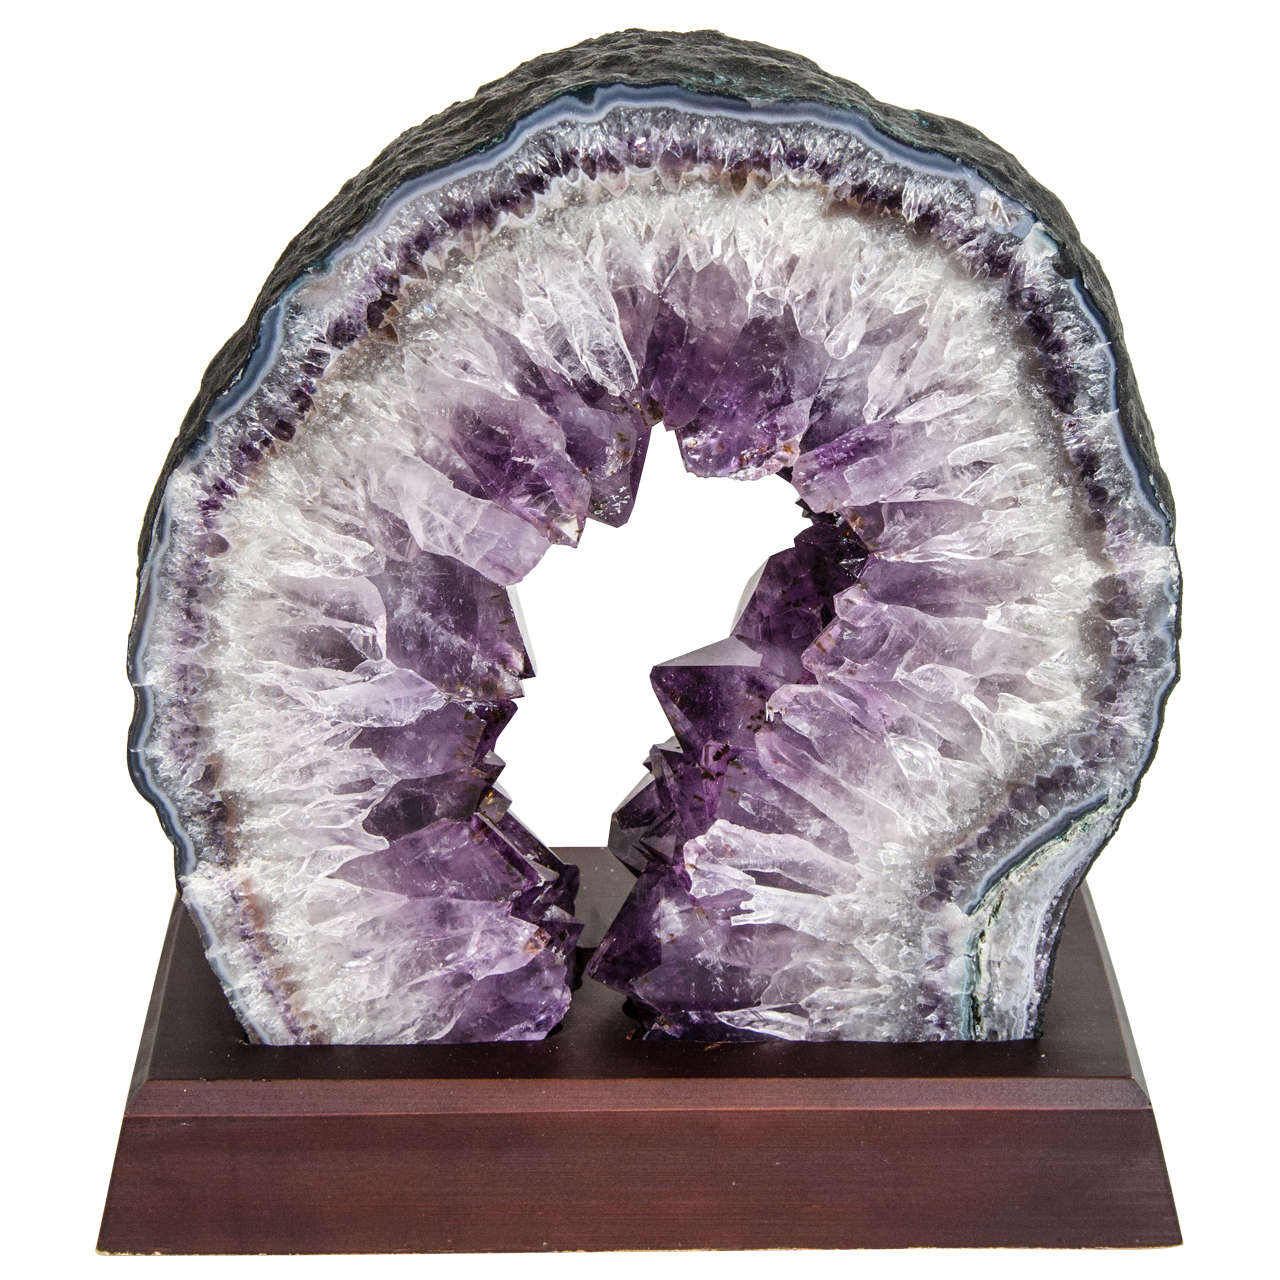 Exquisite Quartz And Amethyst Geode Sculpture On Stand At